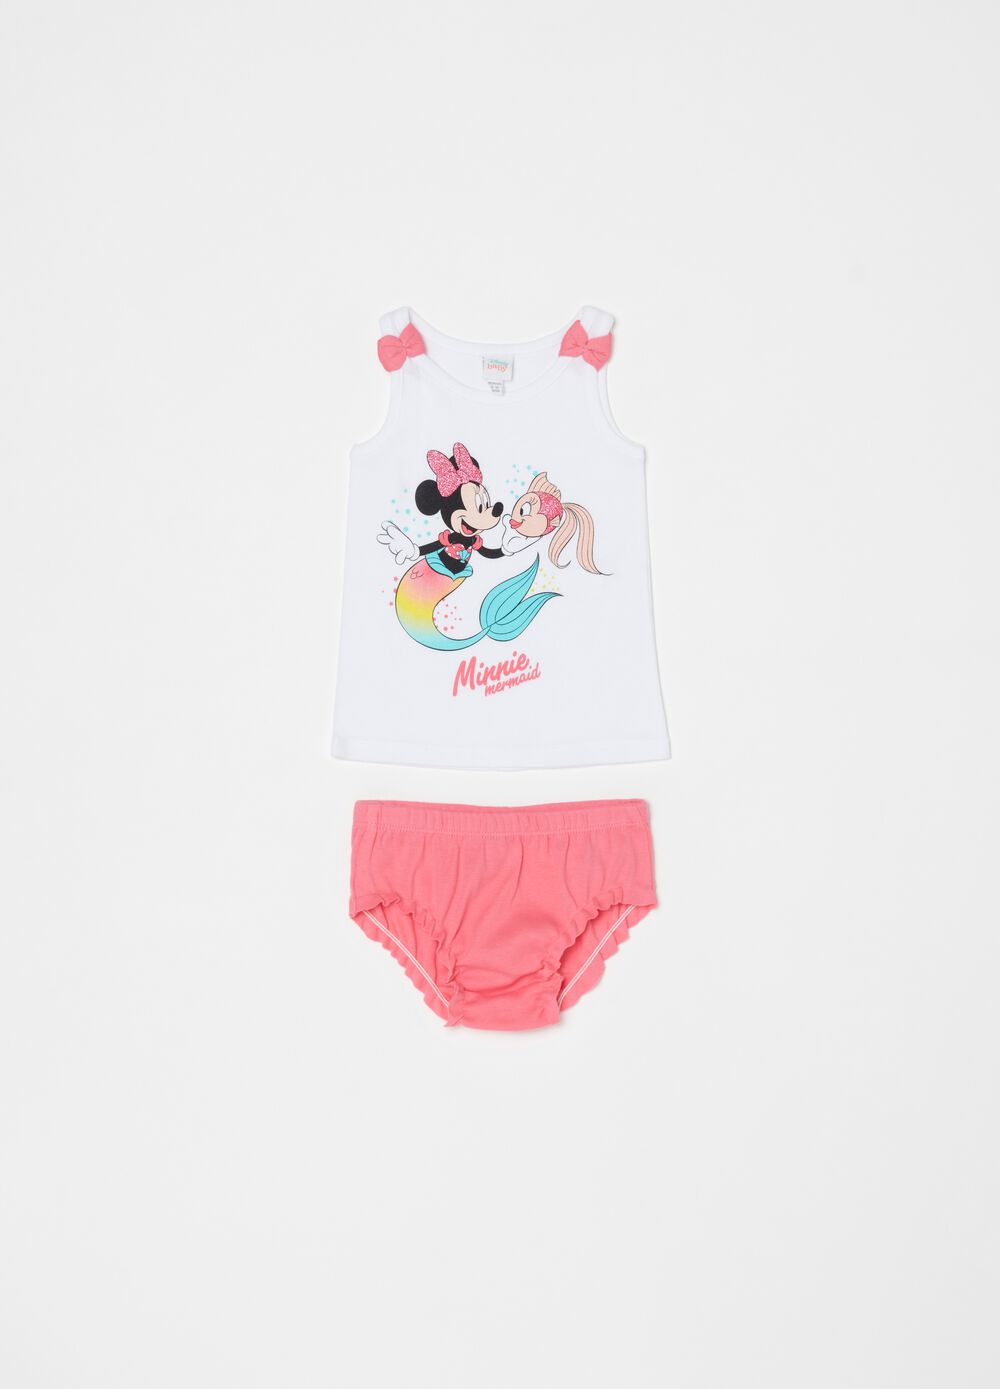 Underwear vest and briefs set with Minnie Mouse print